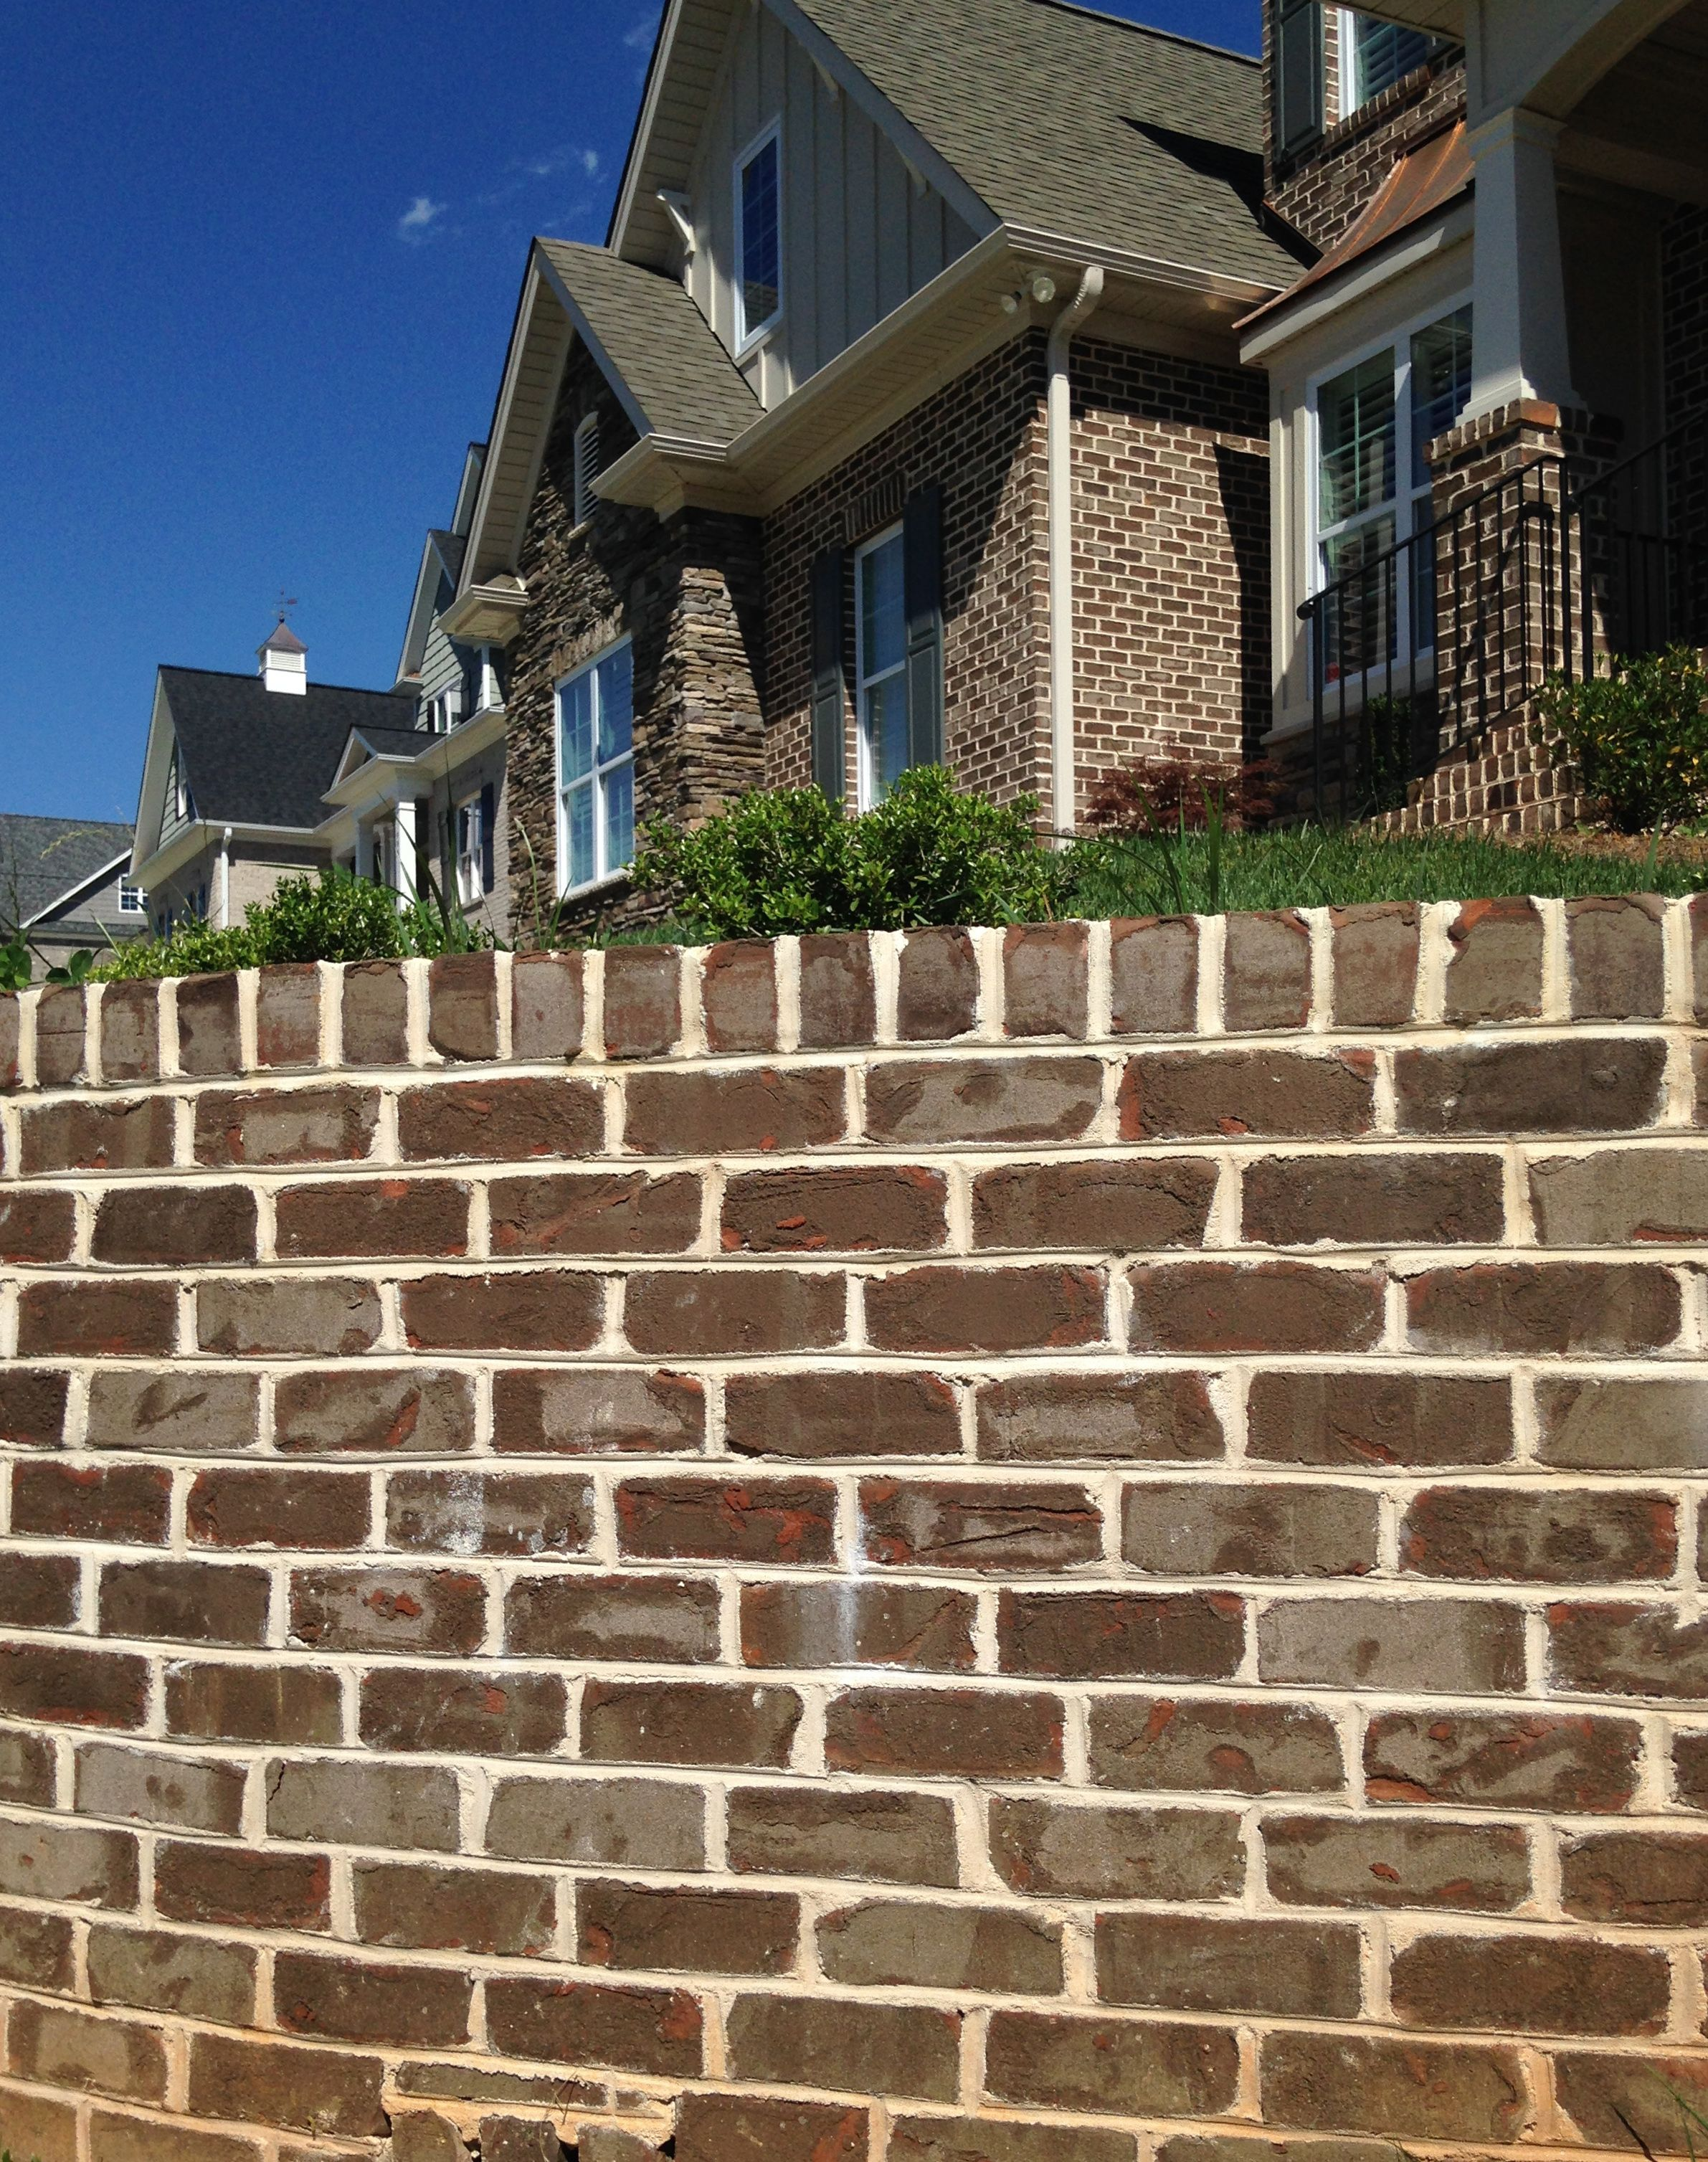 Retaining Wall Matches Home Exterior. Casa Grande Facebrick With Sand And  White Mortar Made By